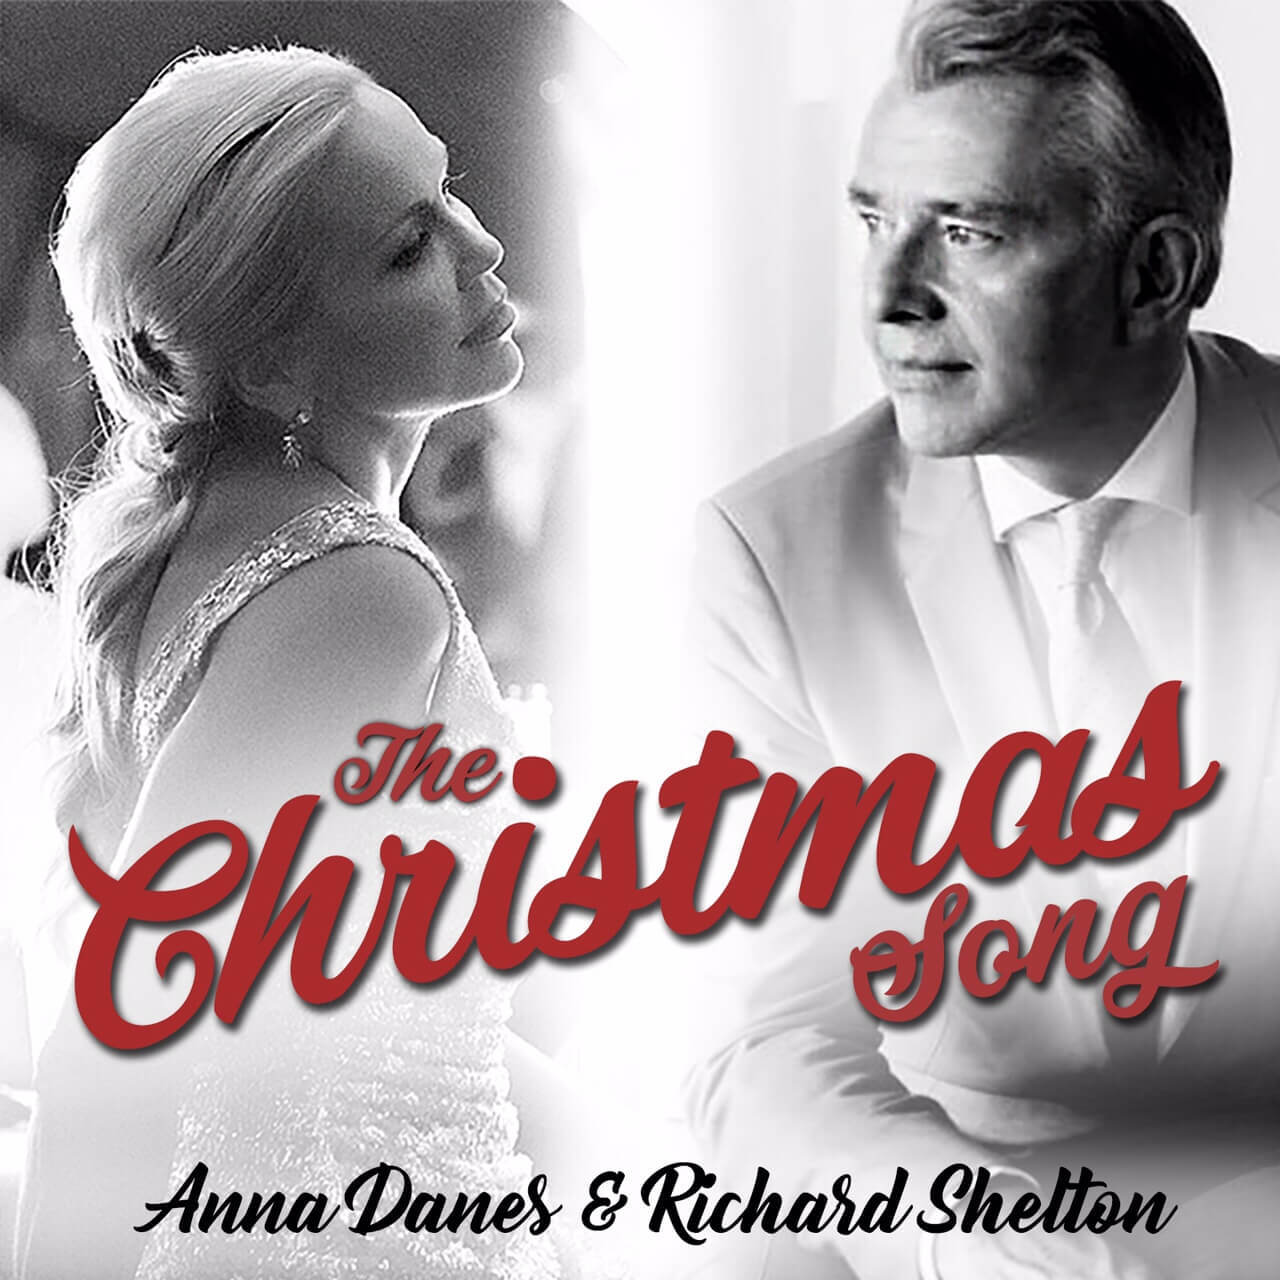 The Christmas Song By Anna Danes and Richard Shelton